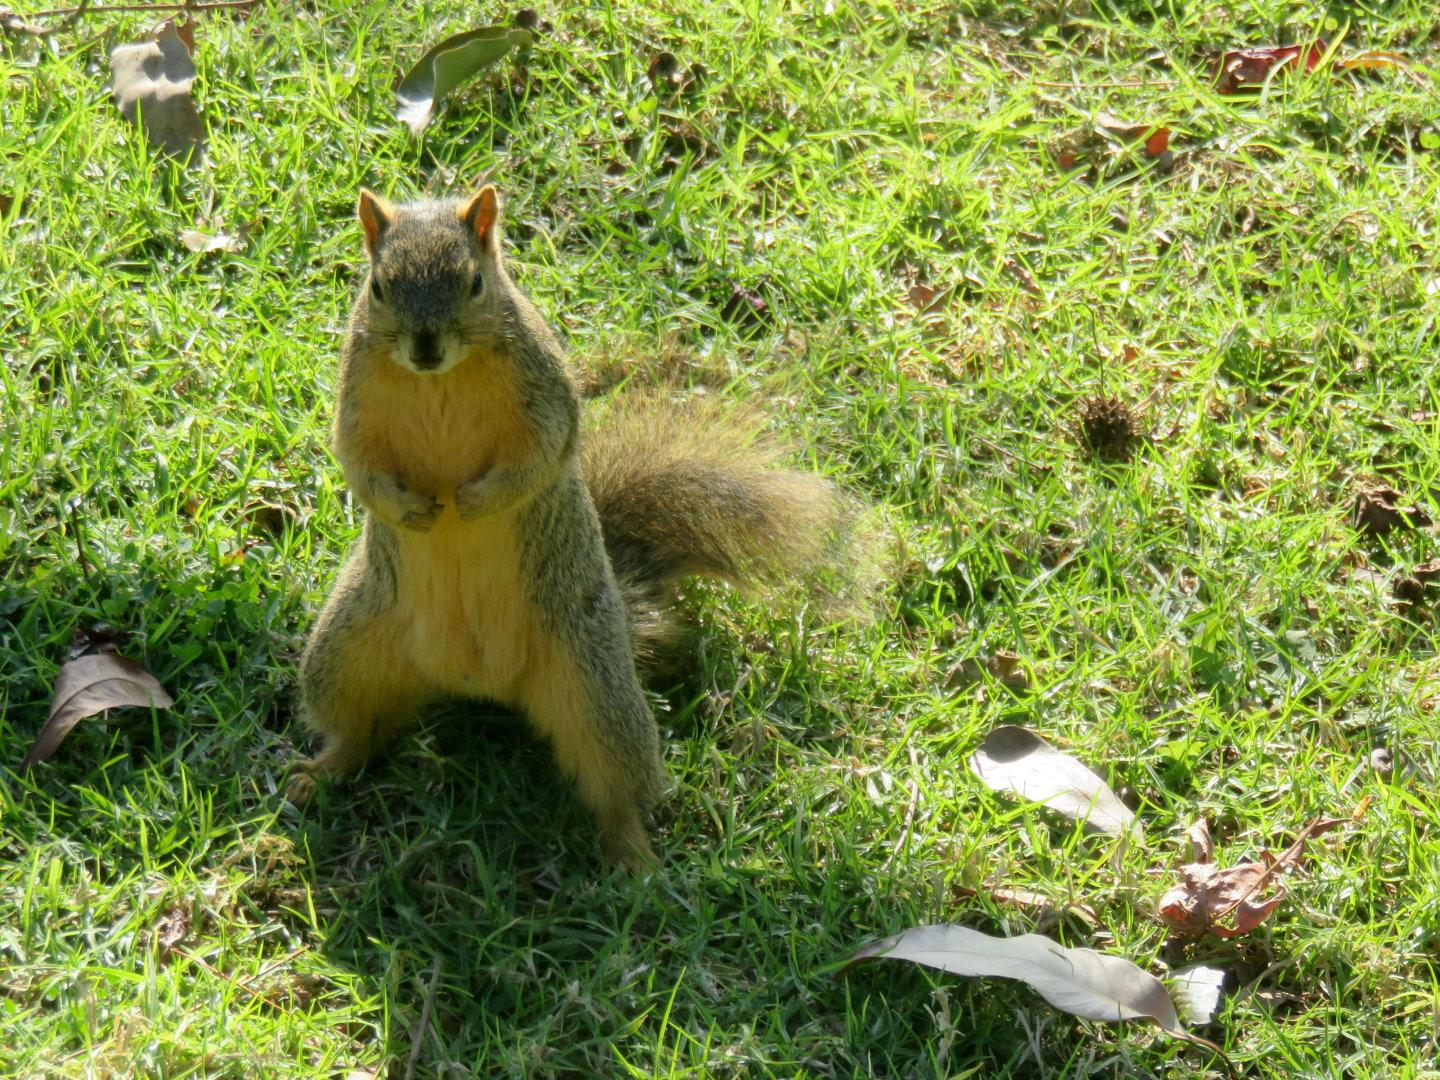 I saw this squirrel from about 20 feet away. It slowly moved toward me, pausing to pose every few feet. I think it was hoping I would feed it.